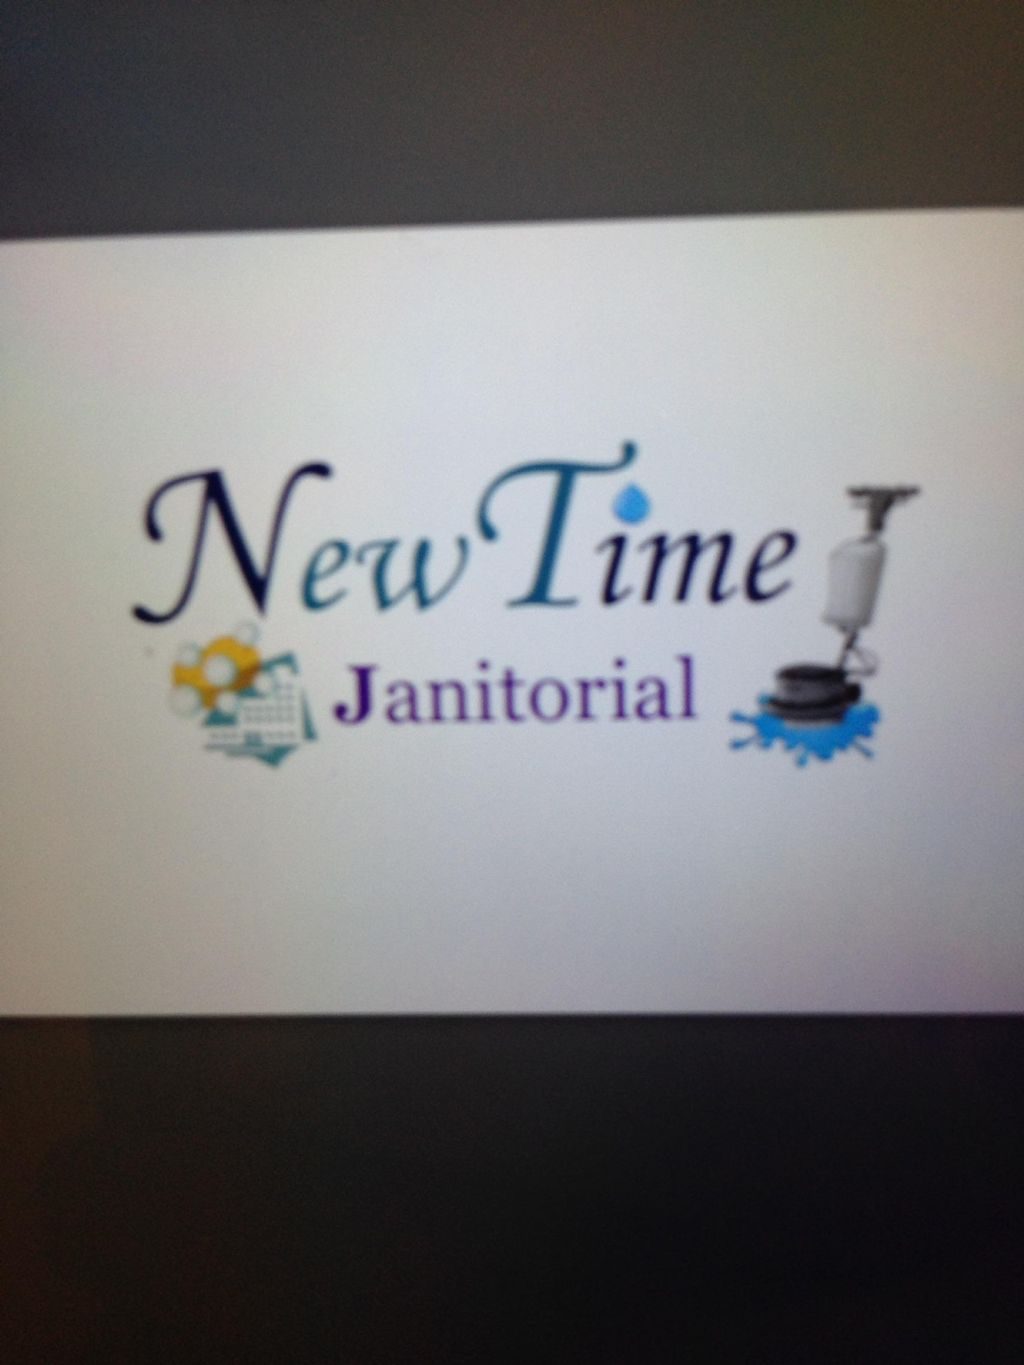 New Time Janitorial